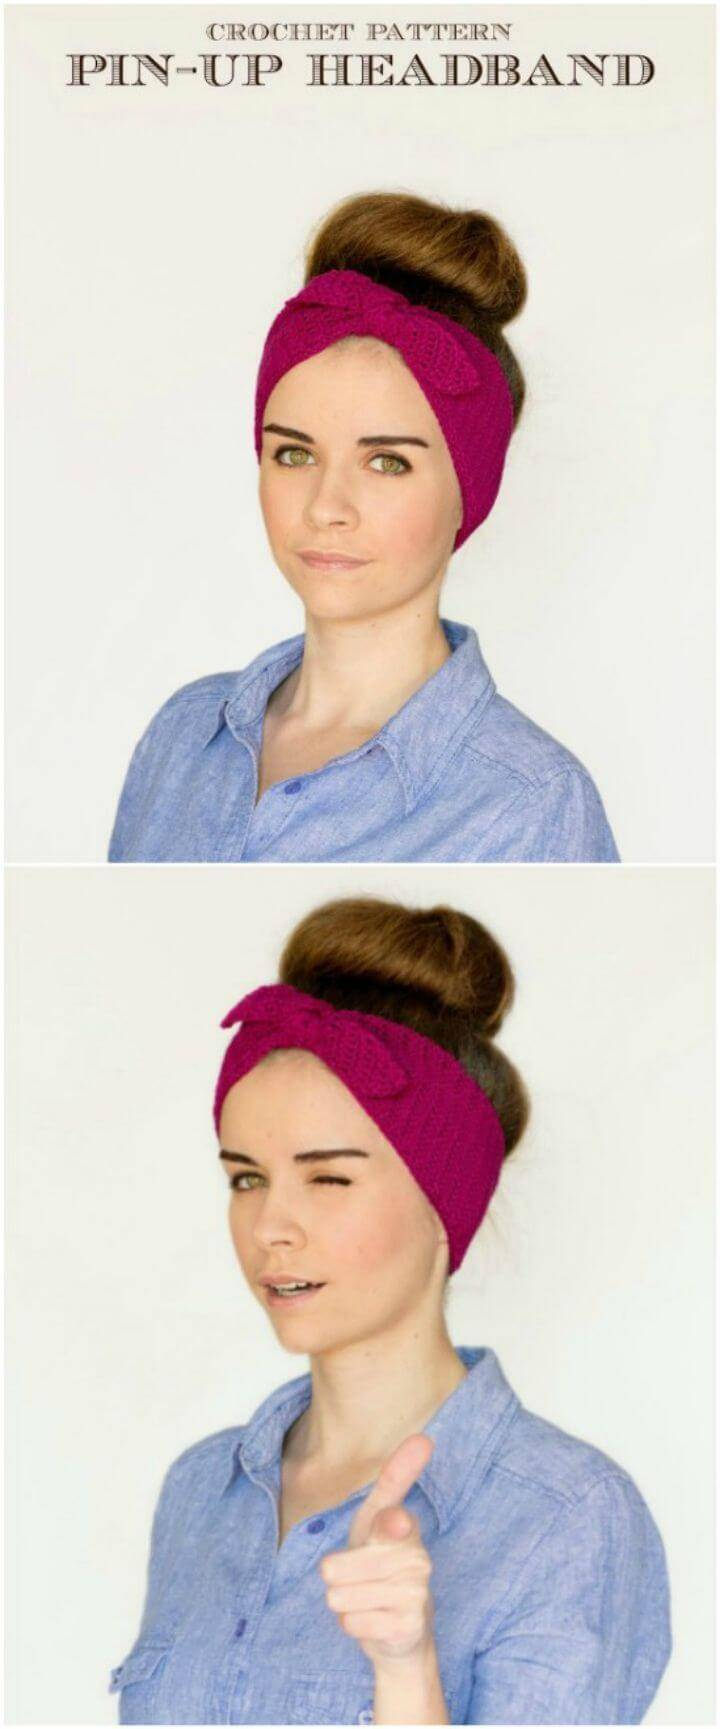 How To Retro Pin-Up Headband Crochet Pattern